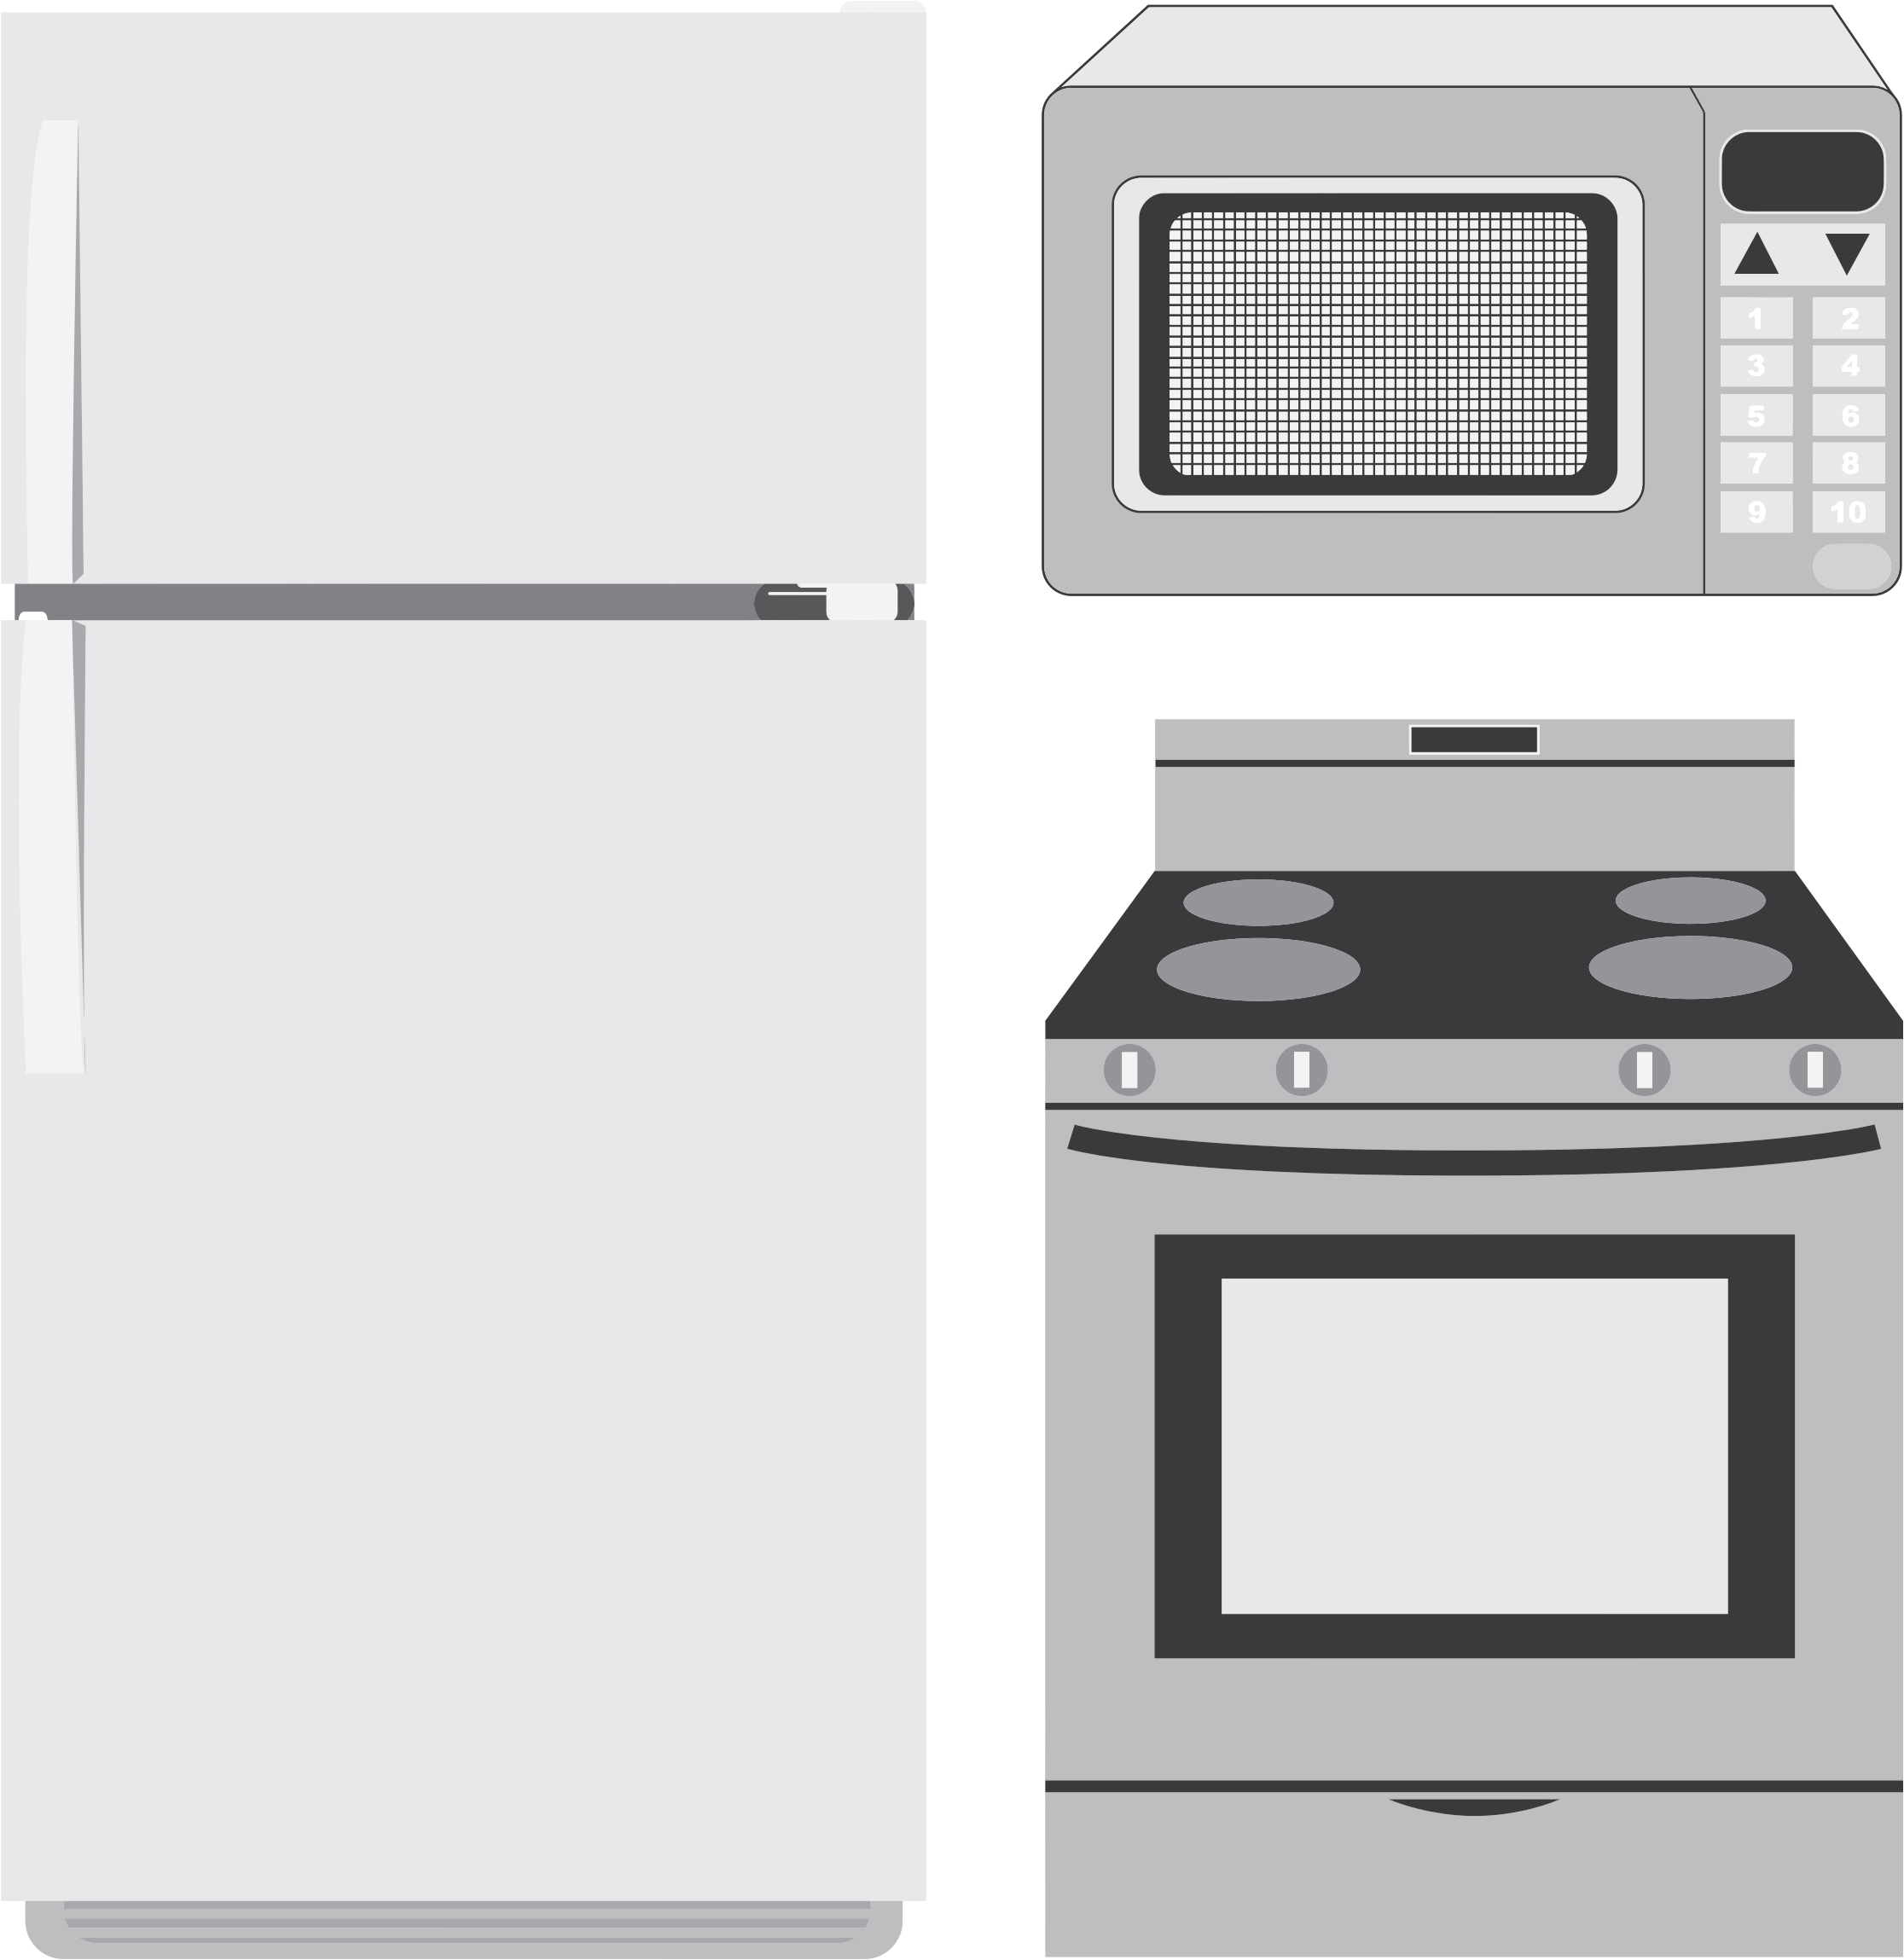 Kitchen clipart kitchen stove Clipart Kitchen Appliances Kitchen Appliances